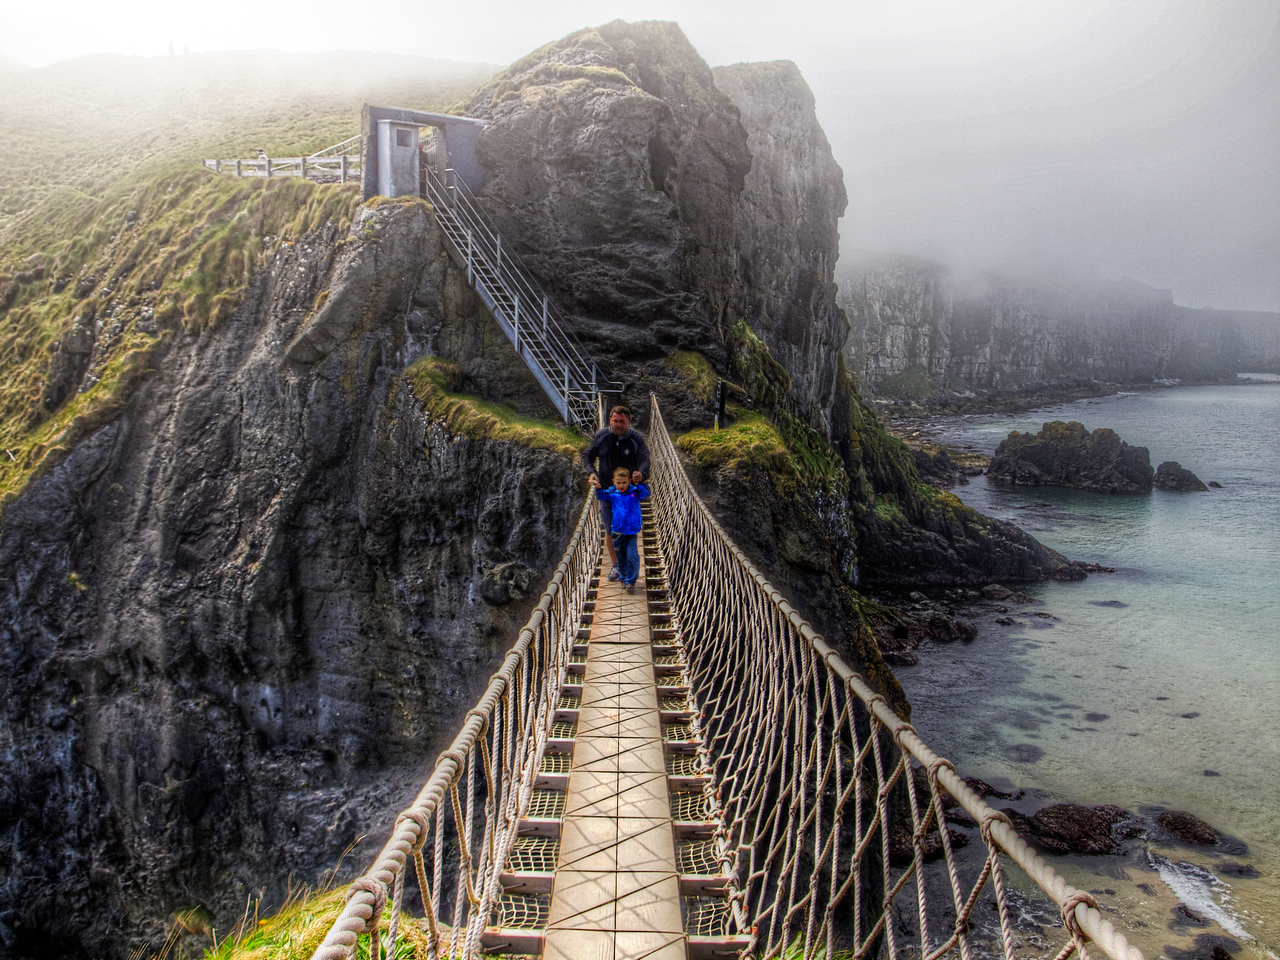 Carrick-a-Rede Rope Bridge Crossing